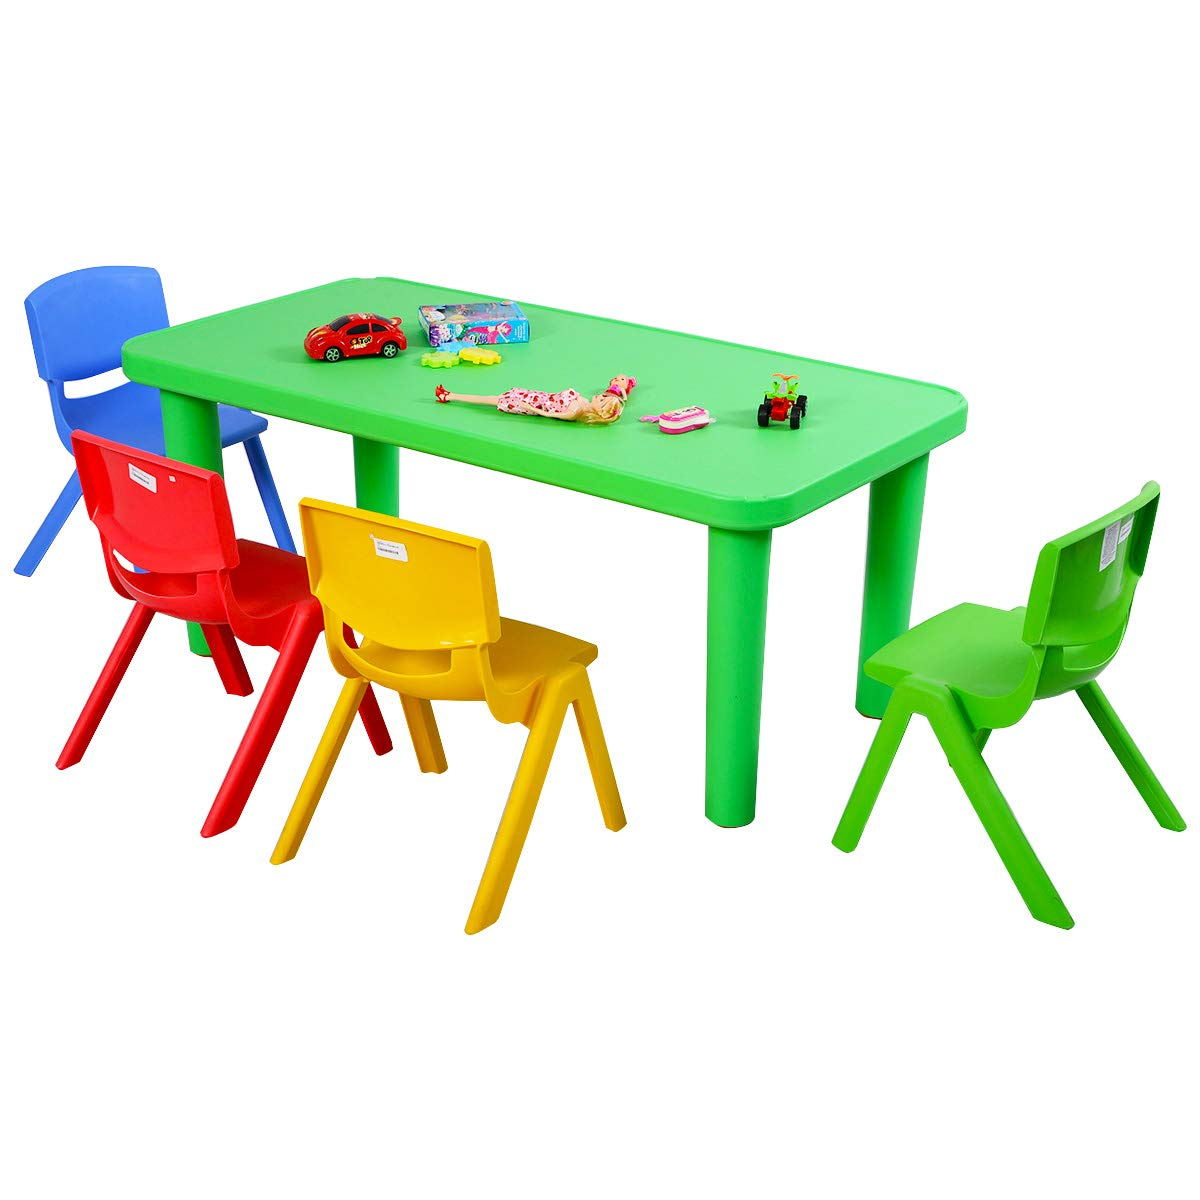 Costzon Kids Table and Chair Set, Plastic Learn and Play Activity Set, Colorful Stackable Chairs, Portable Table for School Home Play Room (Table & 4 Cahirs) by Costzon